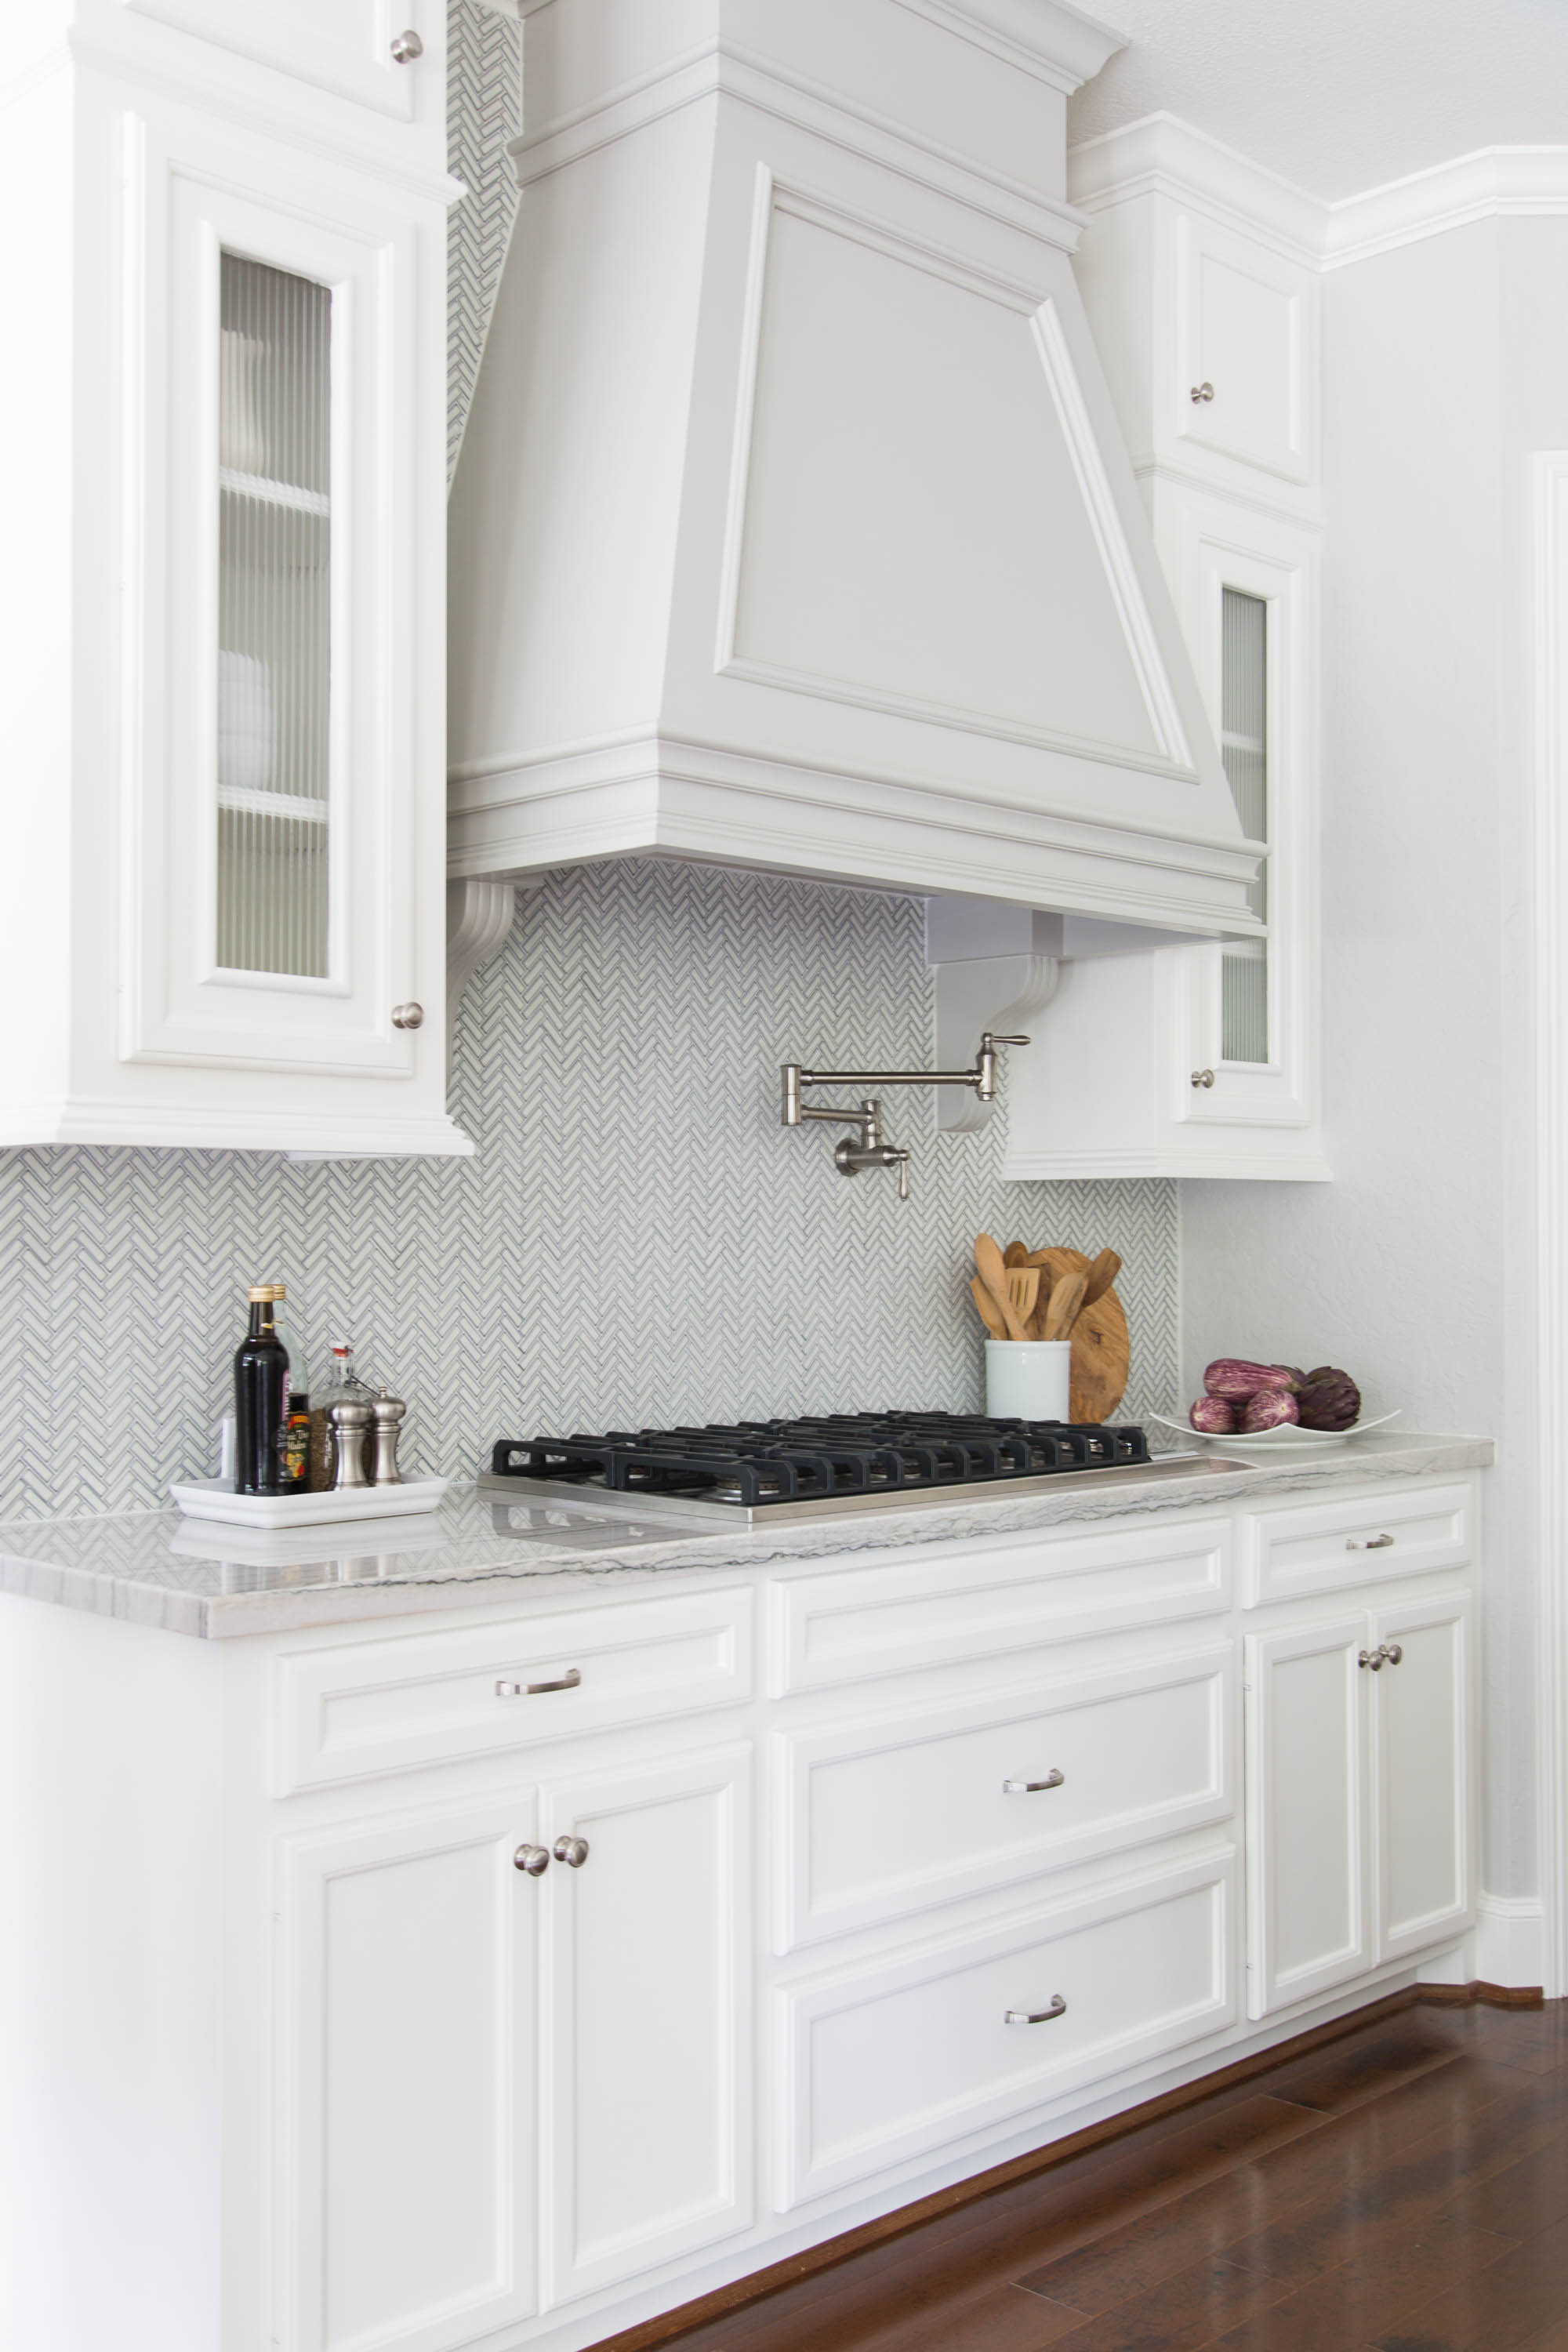 No side backsplash needed, tile dies on inside corner |  Kitchen Remodel , Designer: Carla Aston, Photographer: Tori Aston #tilebacksplash #sidesplash